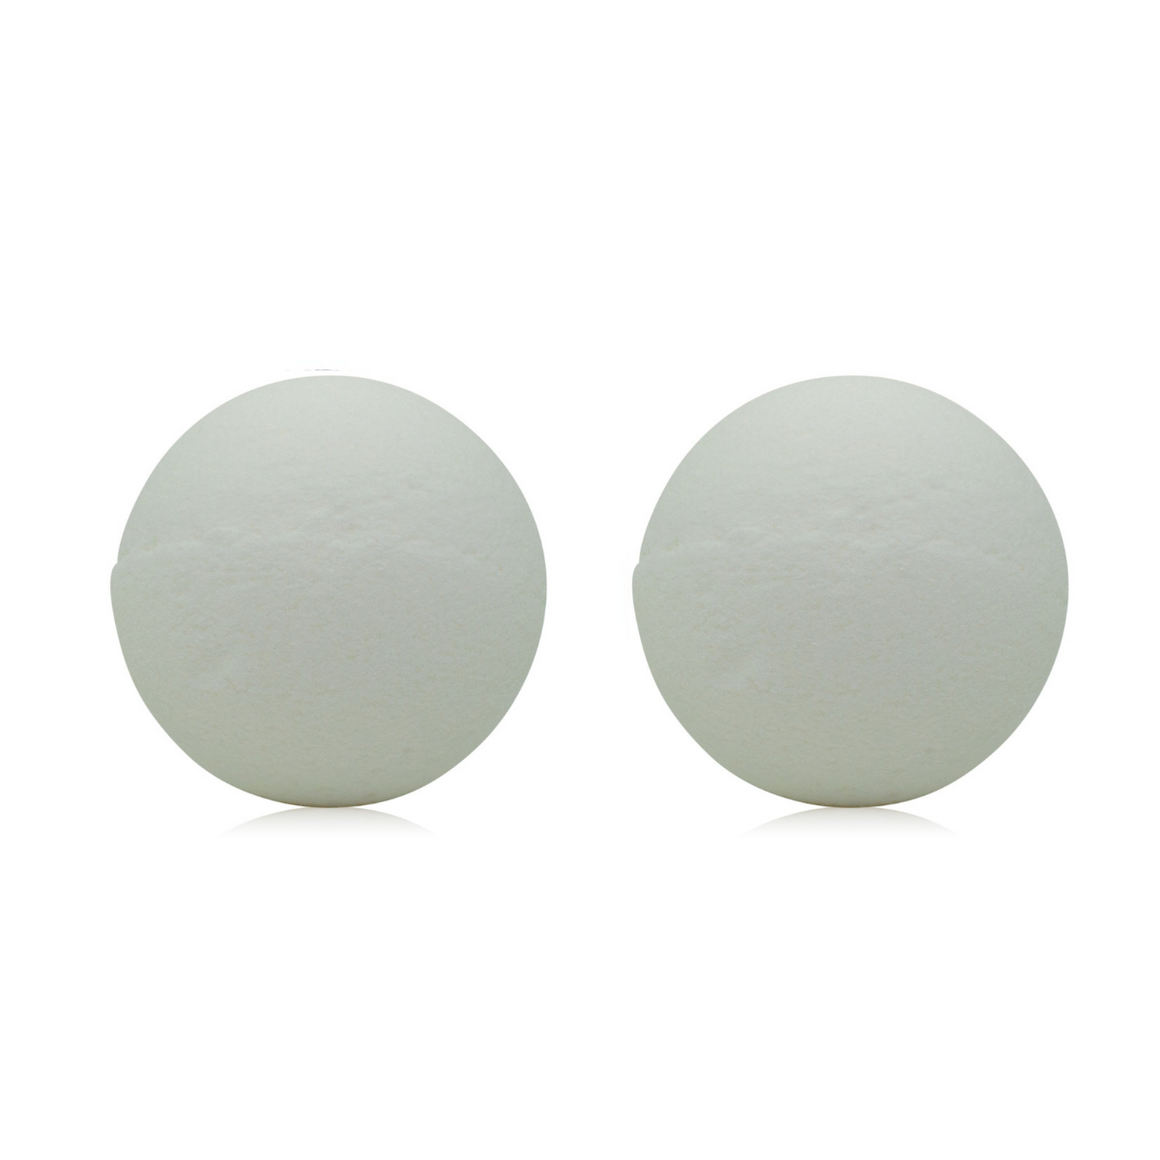 Eucalyptus Peppermint Frankincense Bath Bomb - 2 Pack